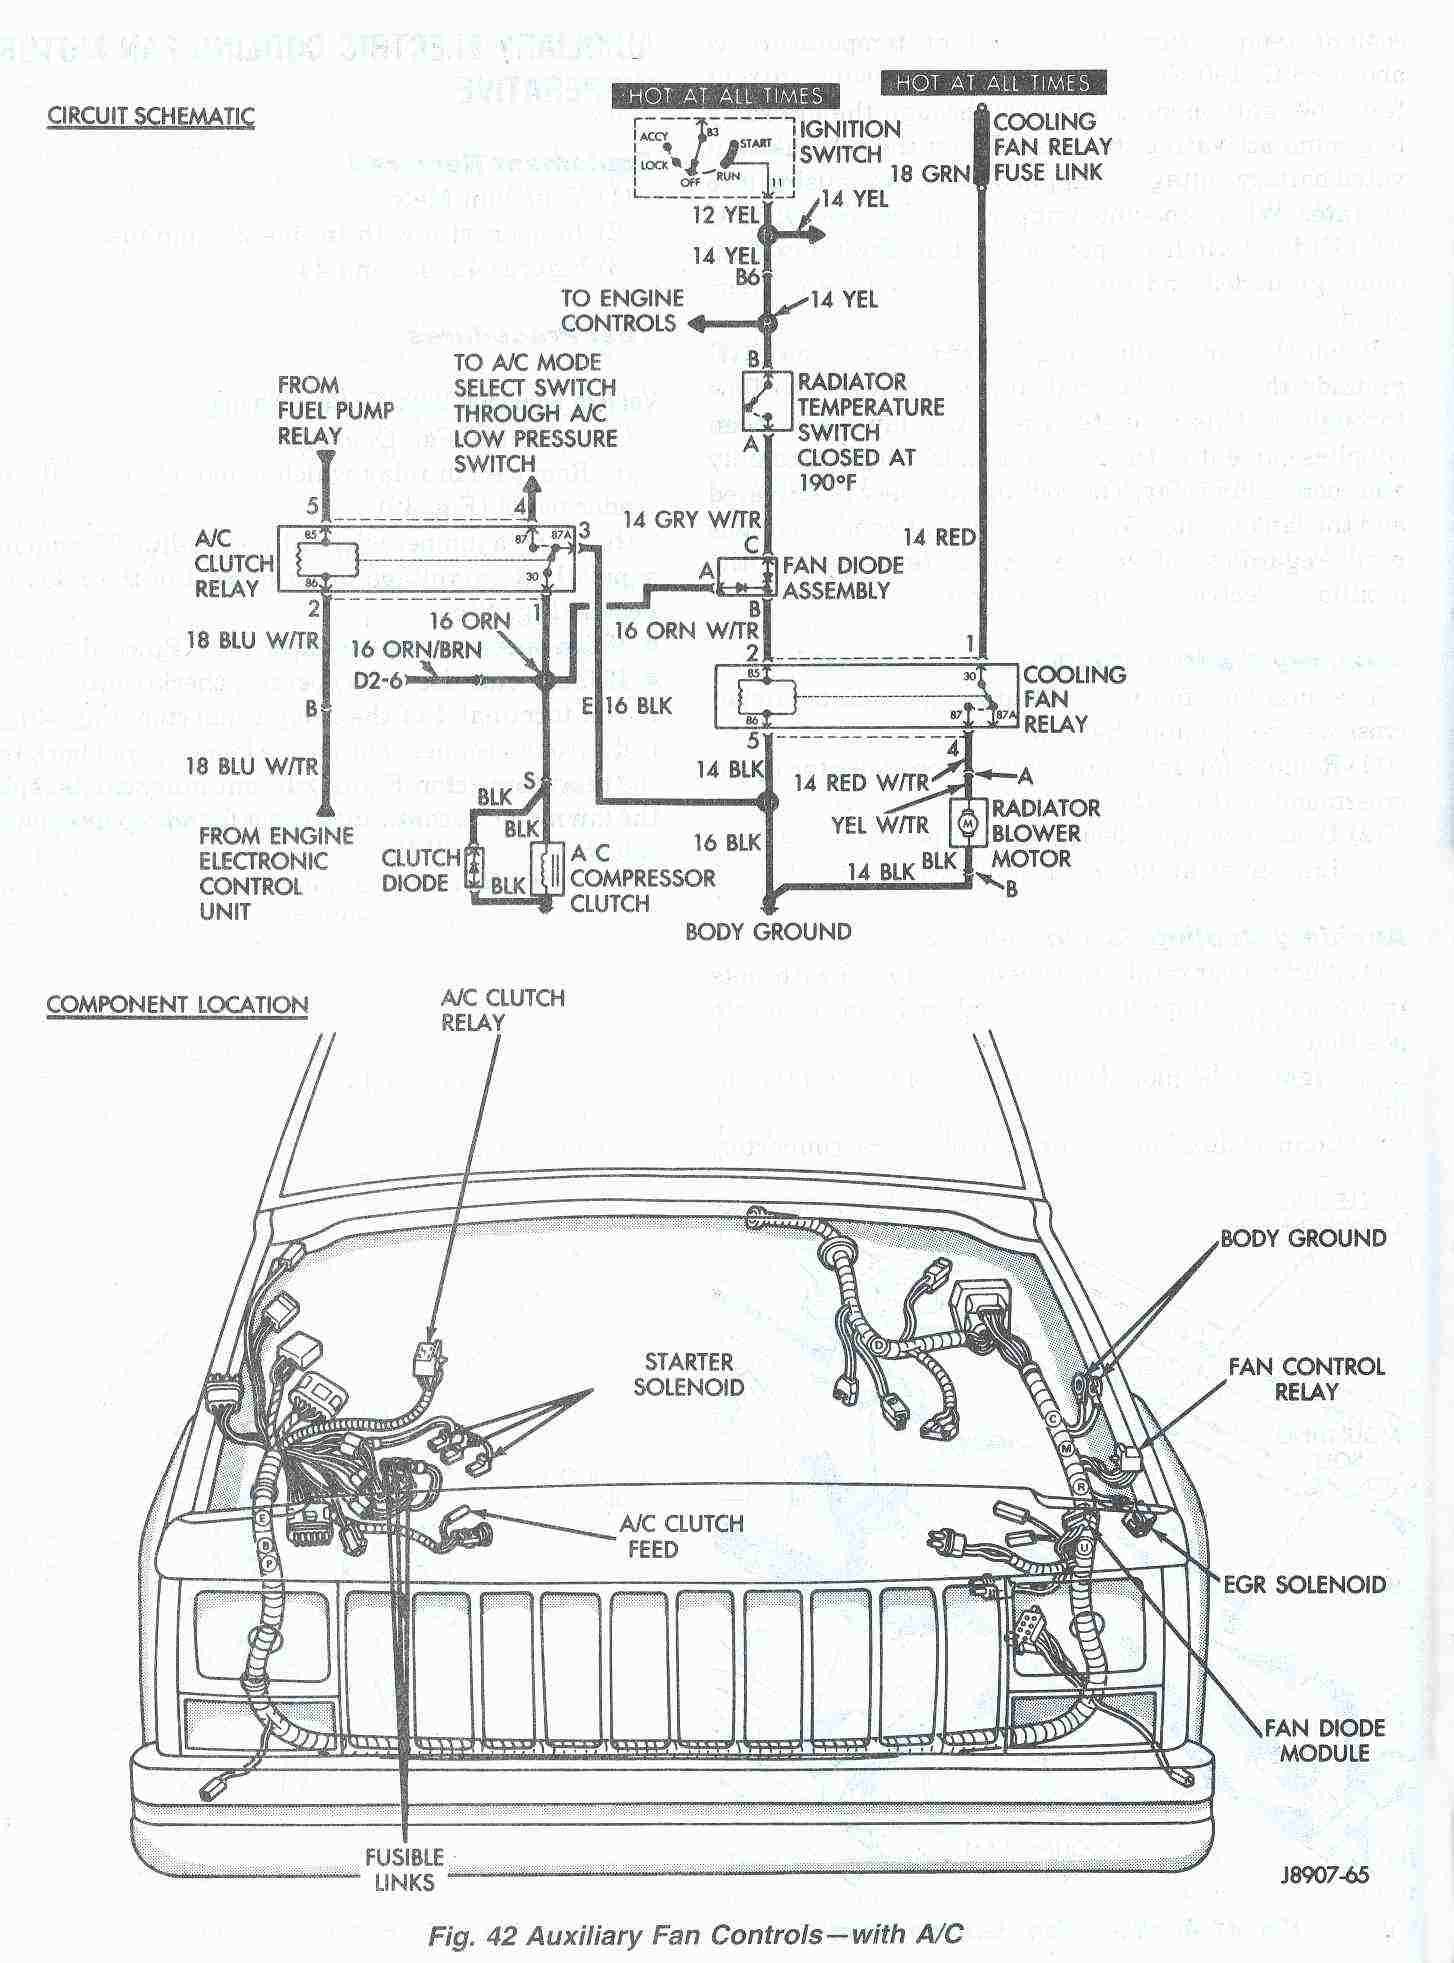 1996 Jeep Grand Cherokee Laredo Wiring Diagram ...